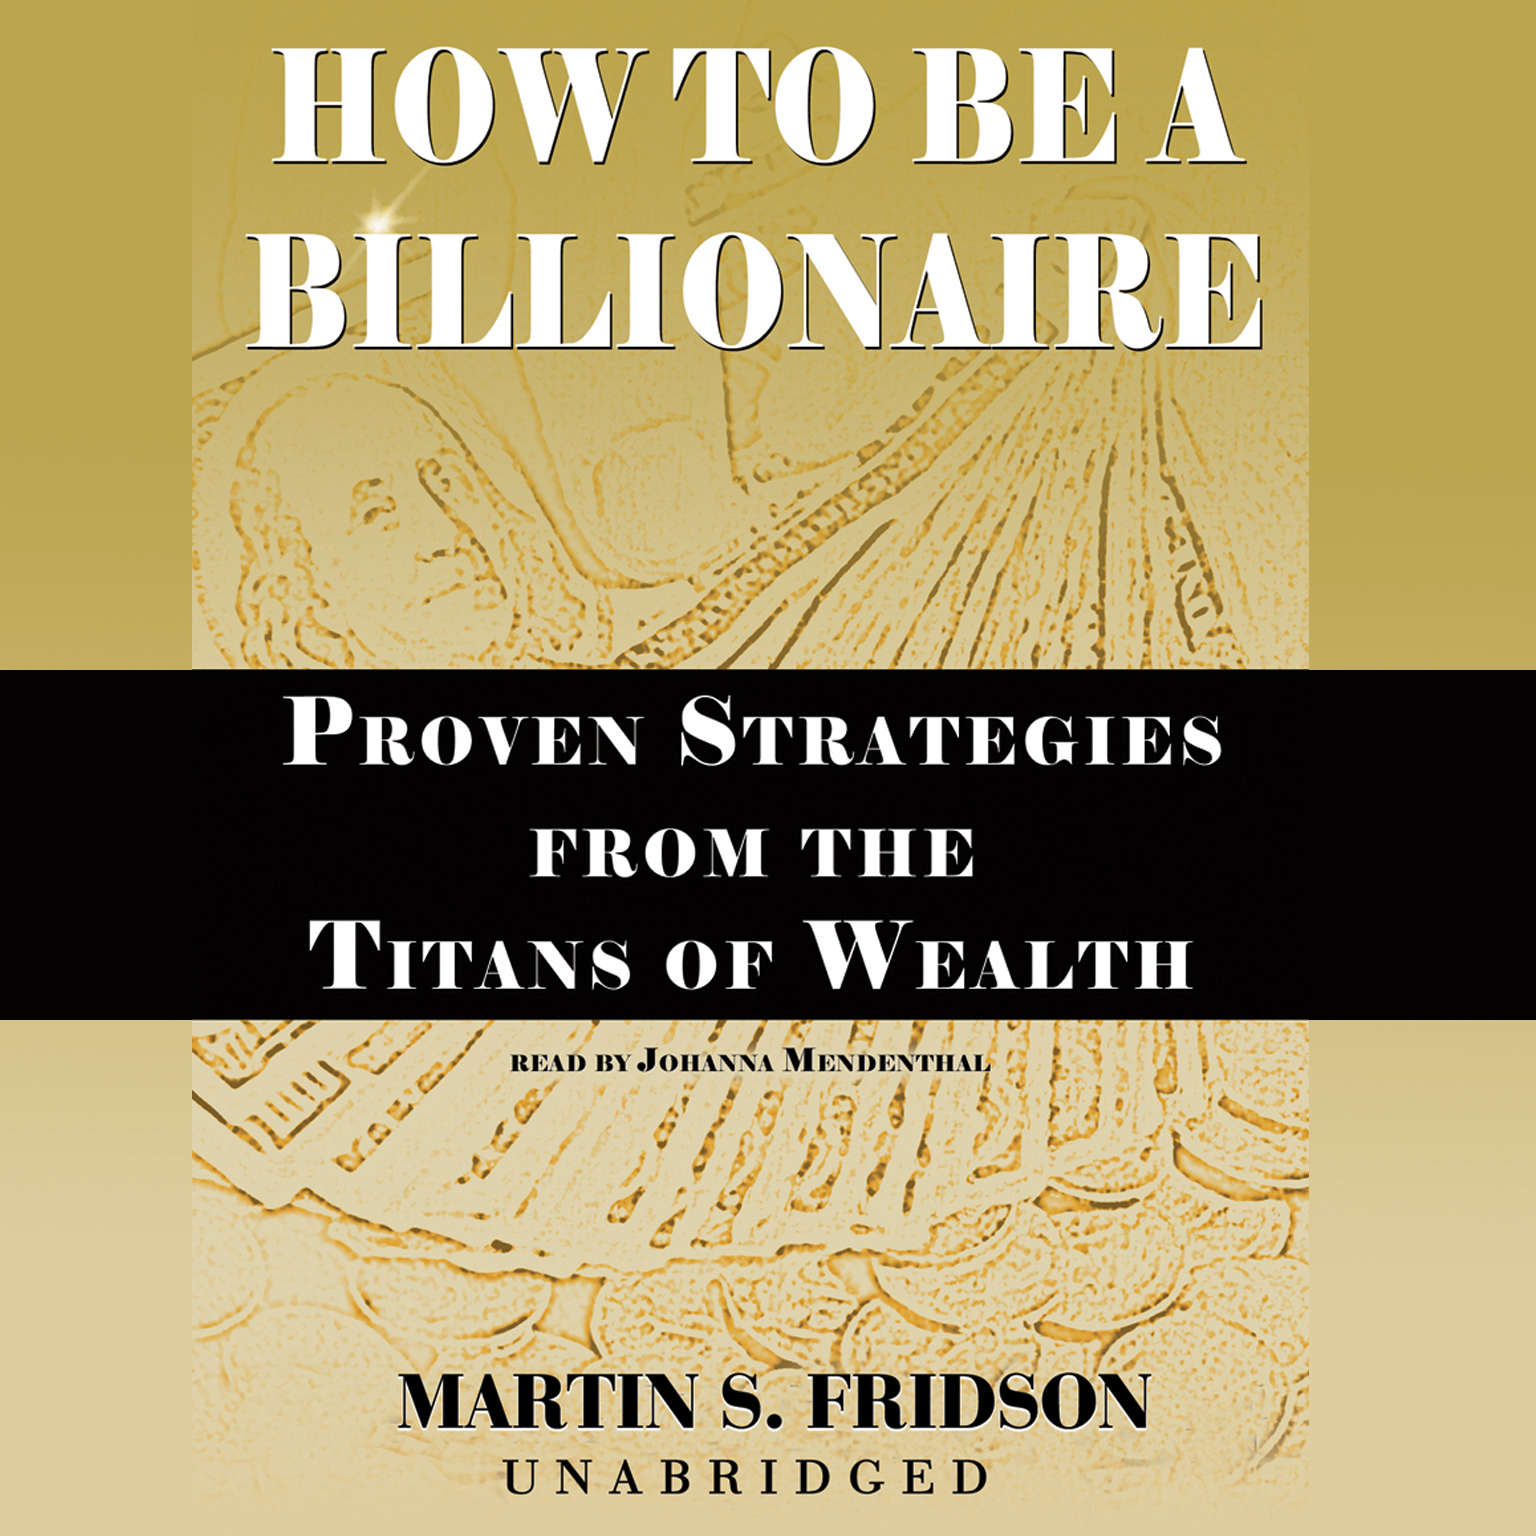 Printable How to Be a Billionaire: Proven Strategies from the Titans of Wealth Audiobook Cover Art